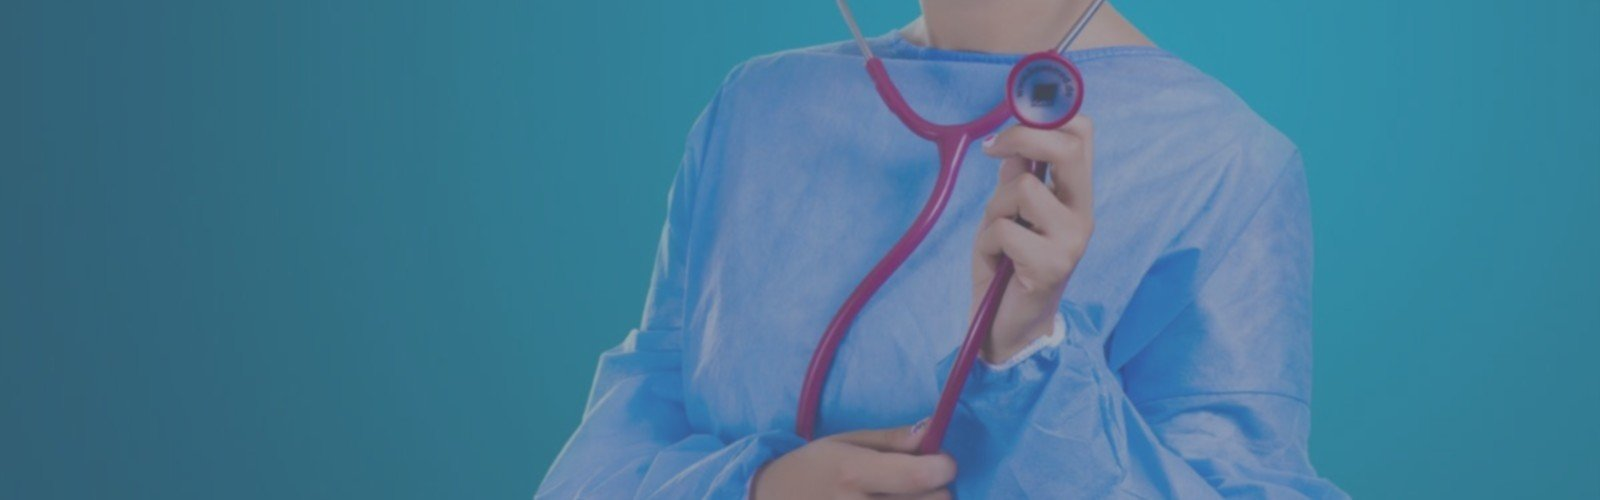 Nursing Cover Letter Sample & Complete Writing Guide [15+ Examples]